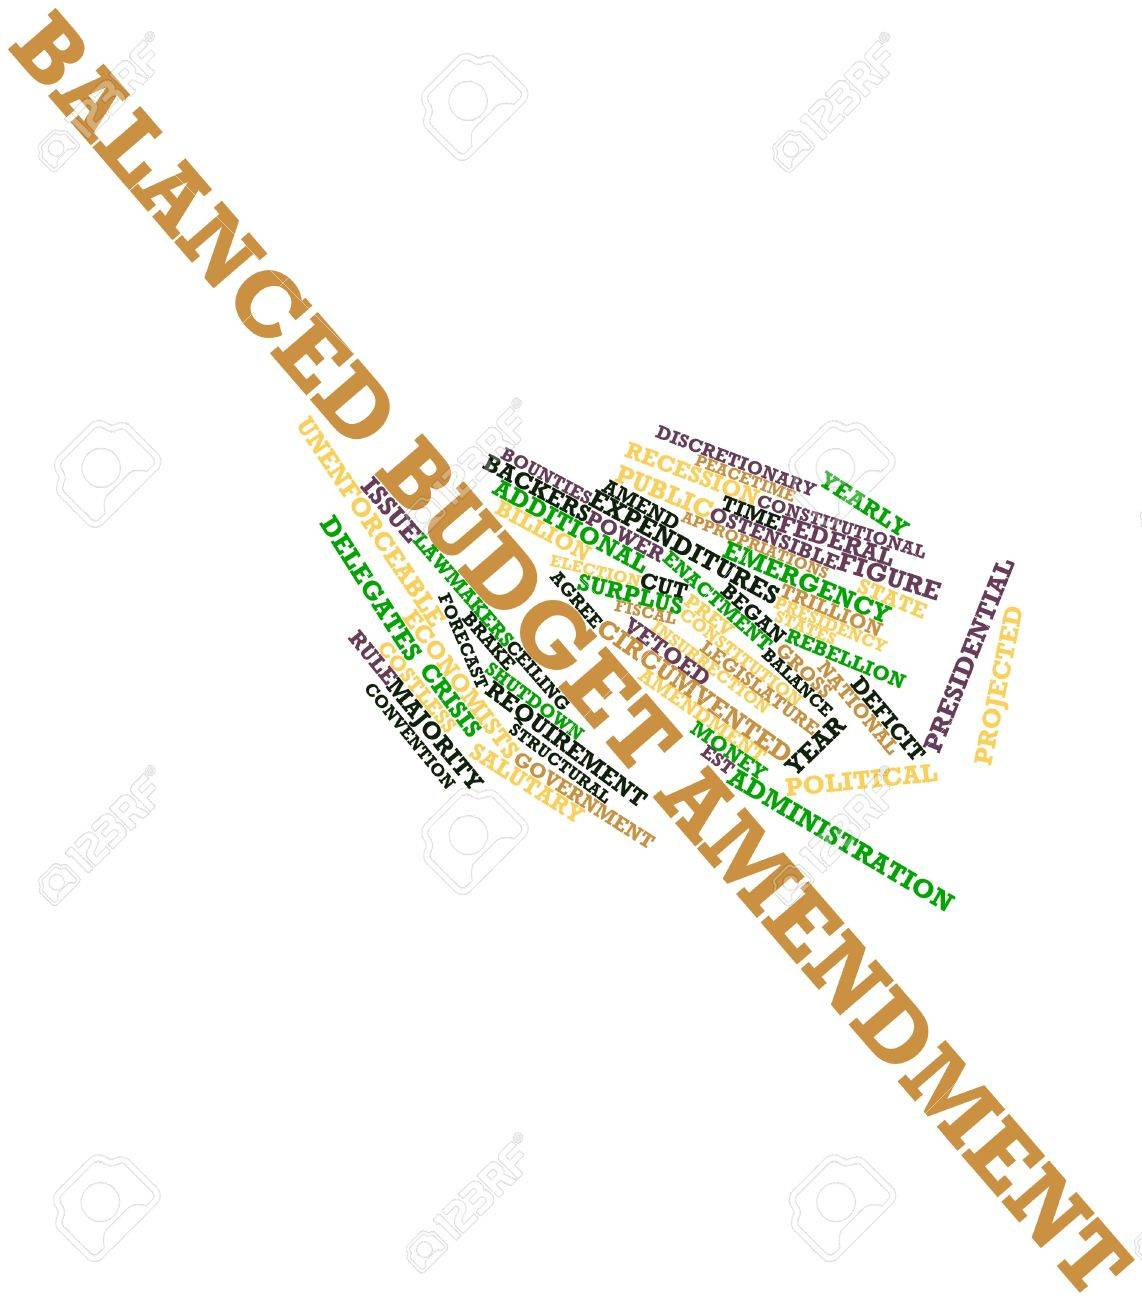 Abstract word cloud for Balanced budget amendment with related tags and terms Stock Photo - 16445916